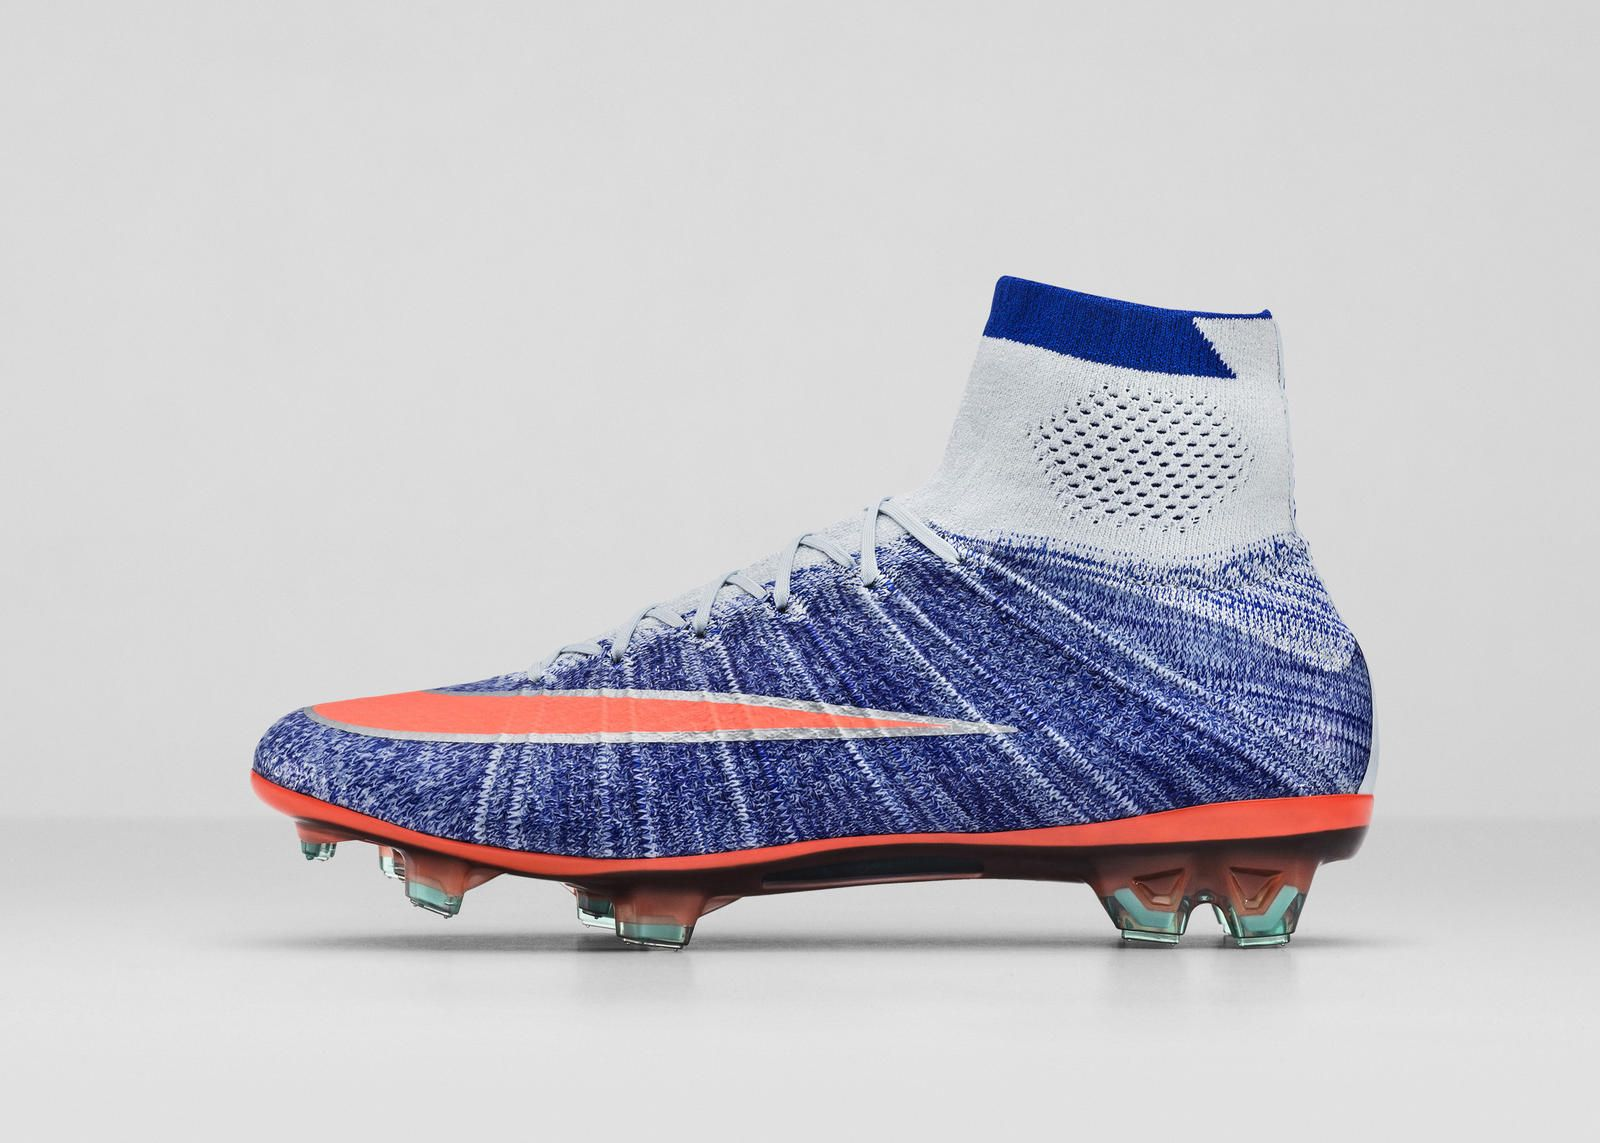 c282b89805de Nike News - NIKE SOCCER UNVEILS ALL-NEW WOMEN S CLEAT PACK FOR 2016